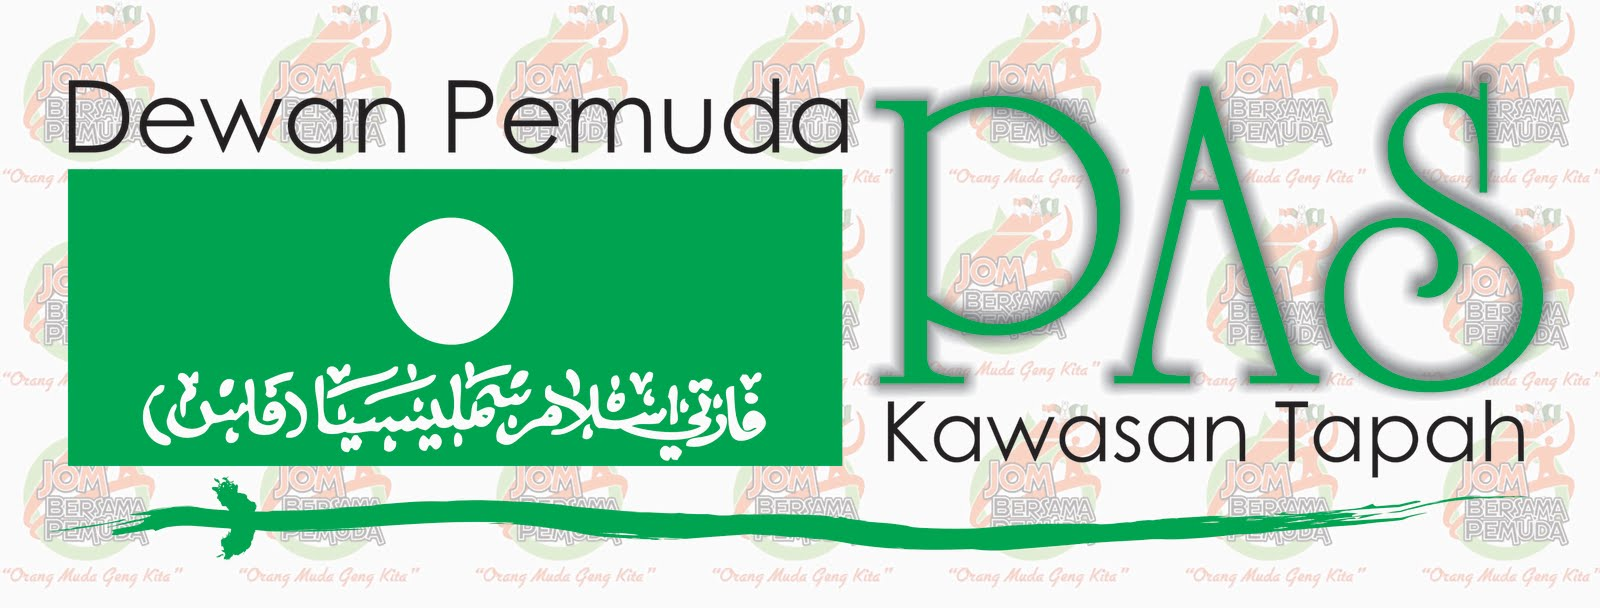 Dewan Pemuda PAS Kawasan Tapah